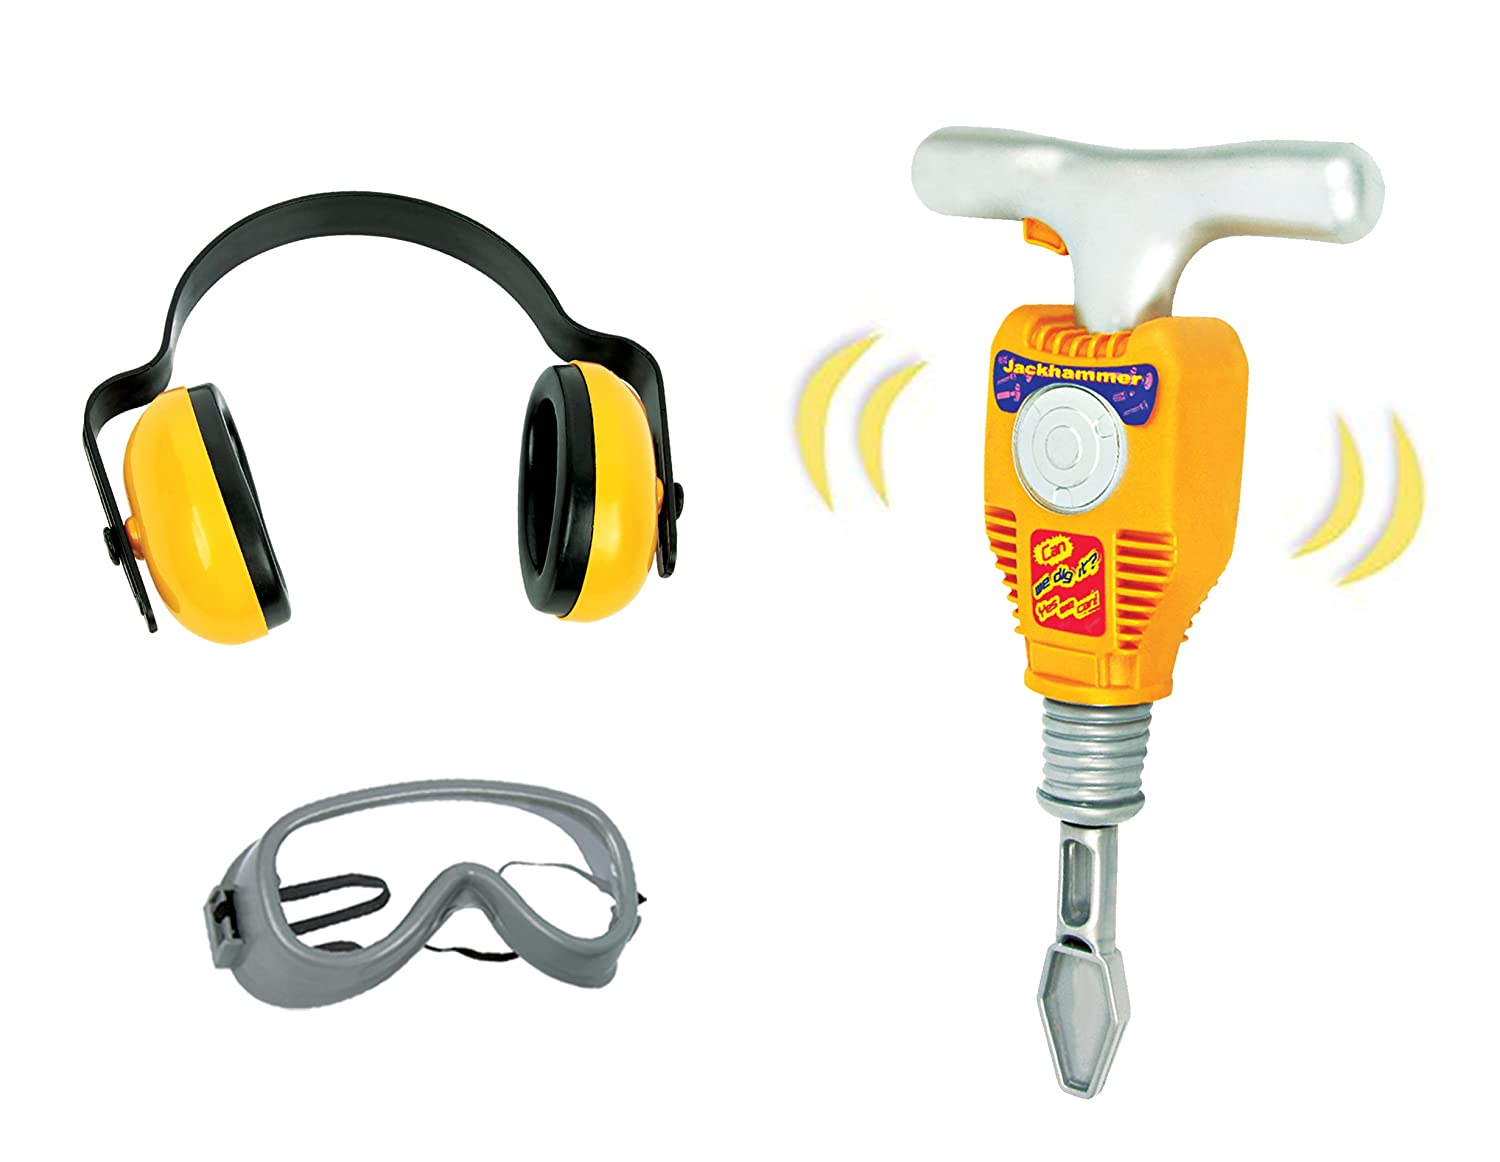 Junior Engineer Jackhammer Toy Construction Tool Drill with Earmuffs, Safety Goggles, and Accessories Liberty Imports